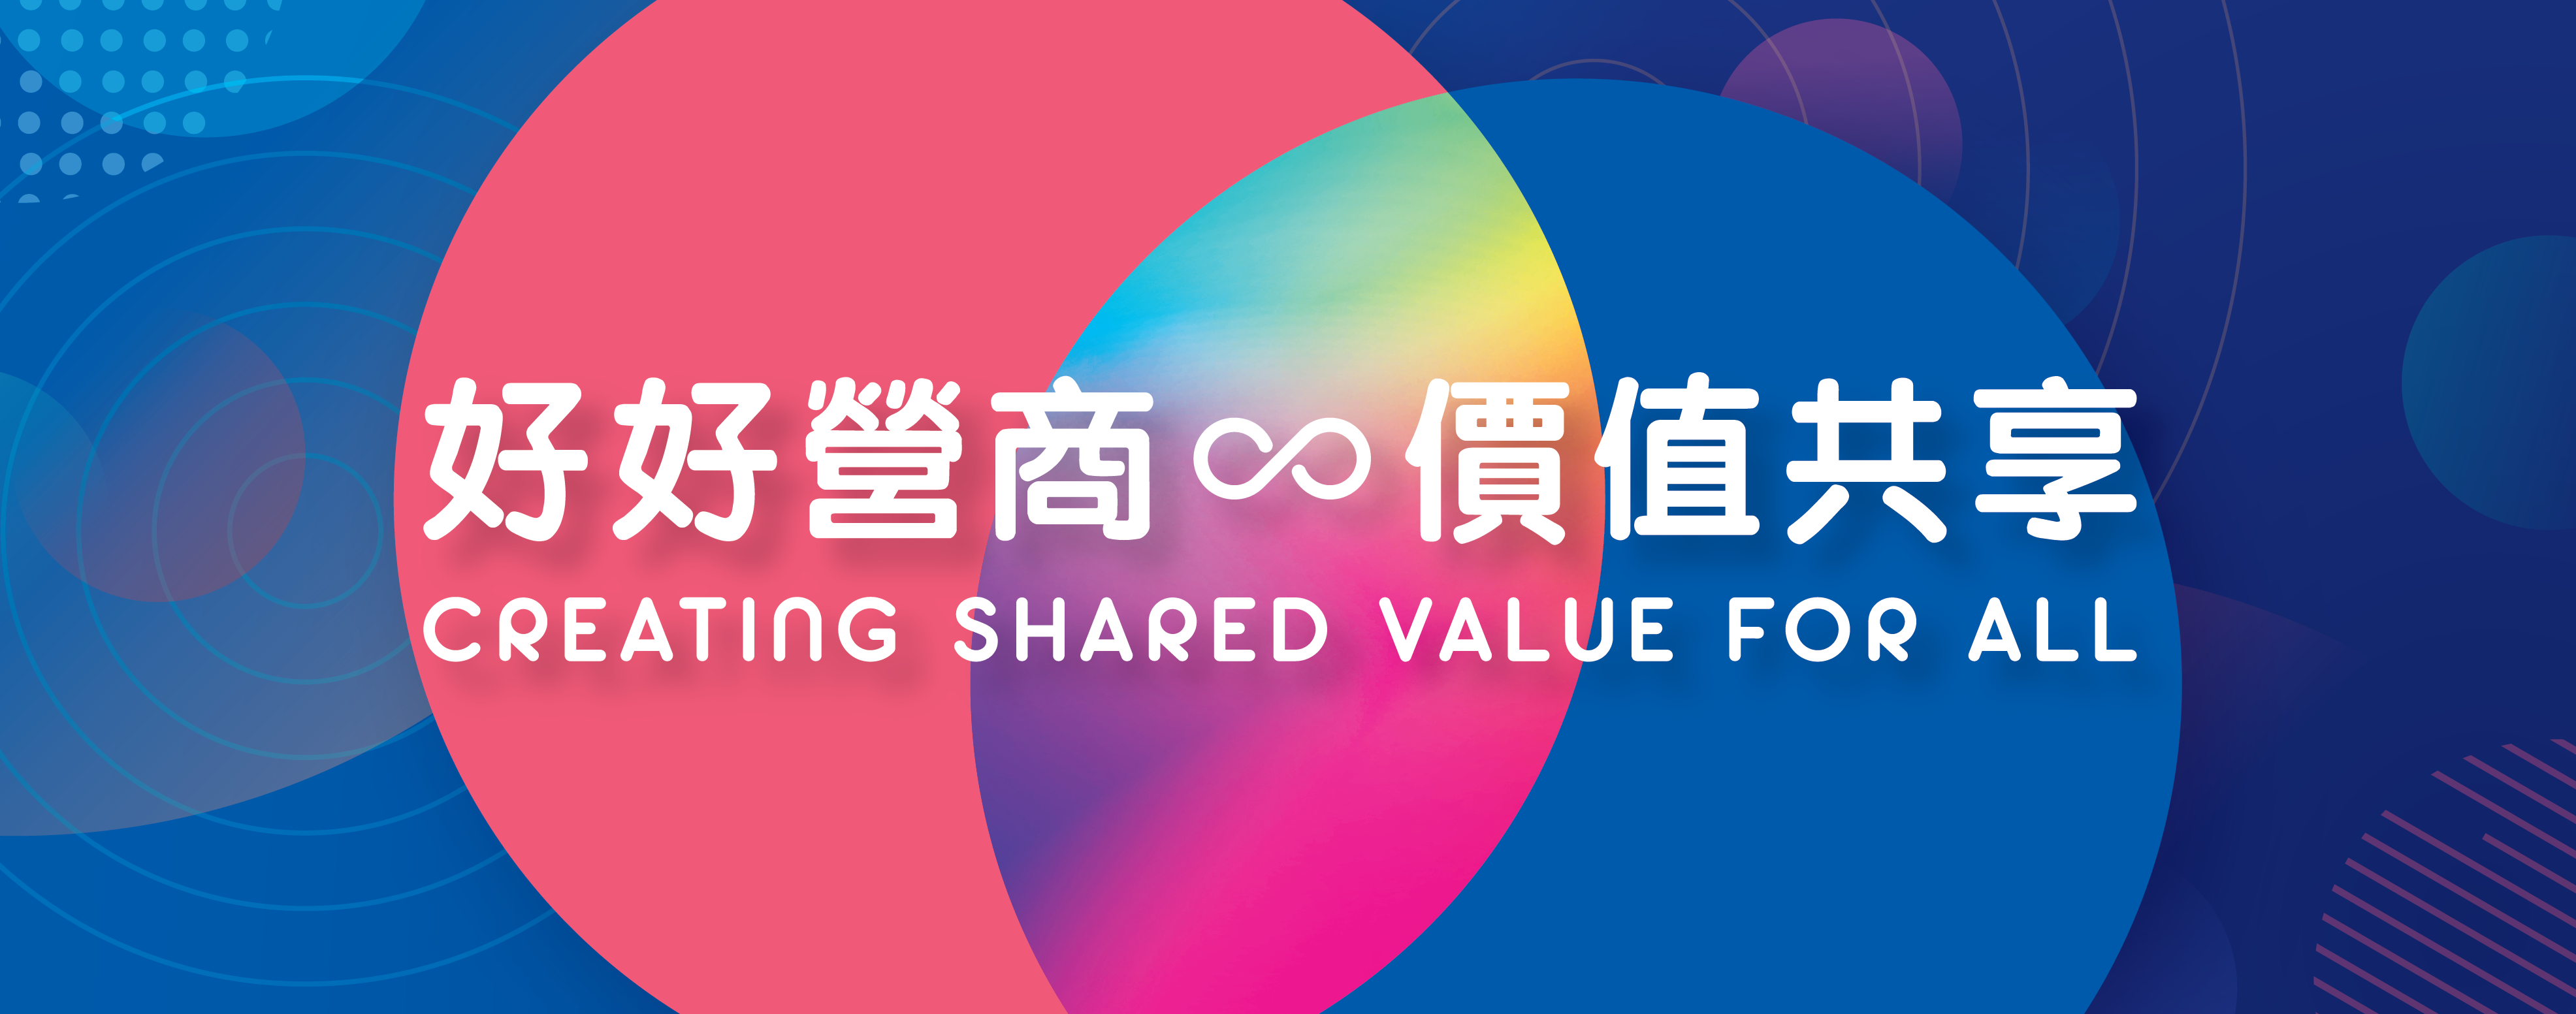 Creating shared value for all